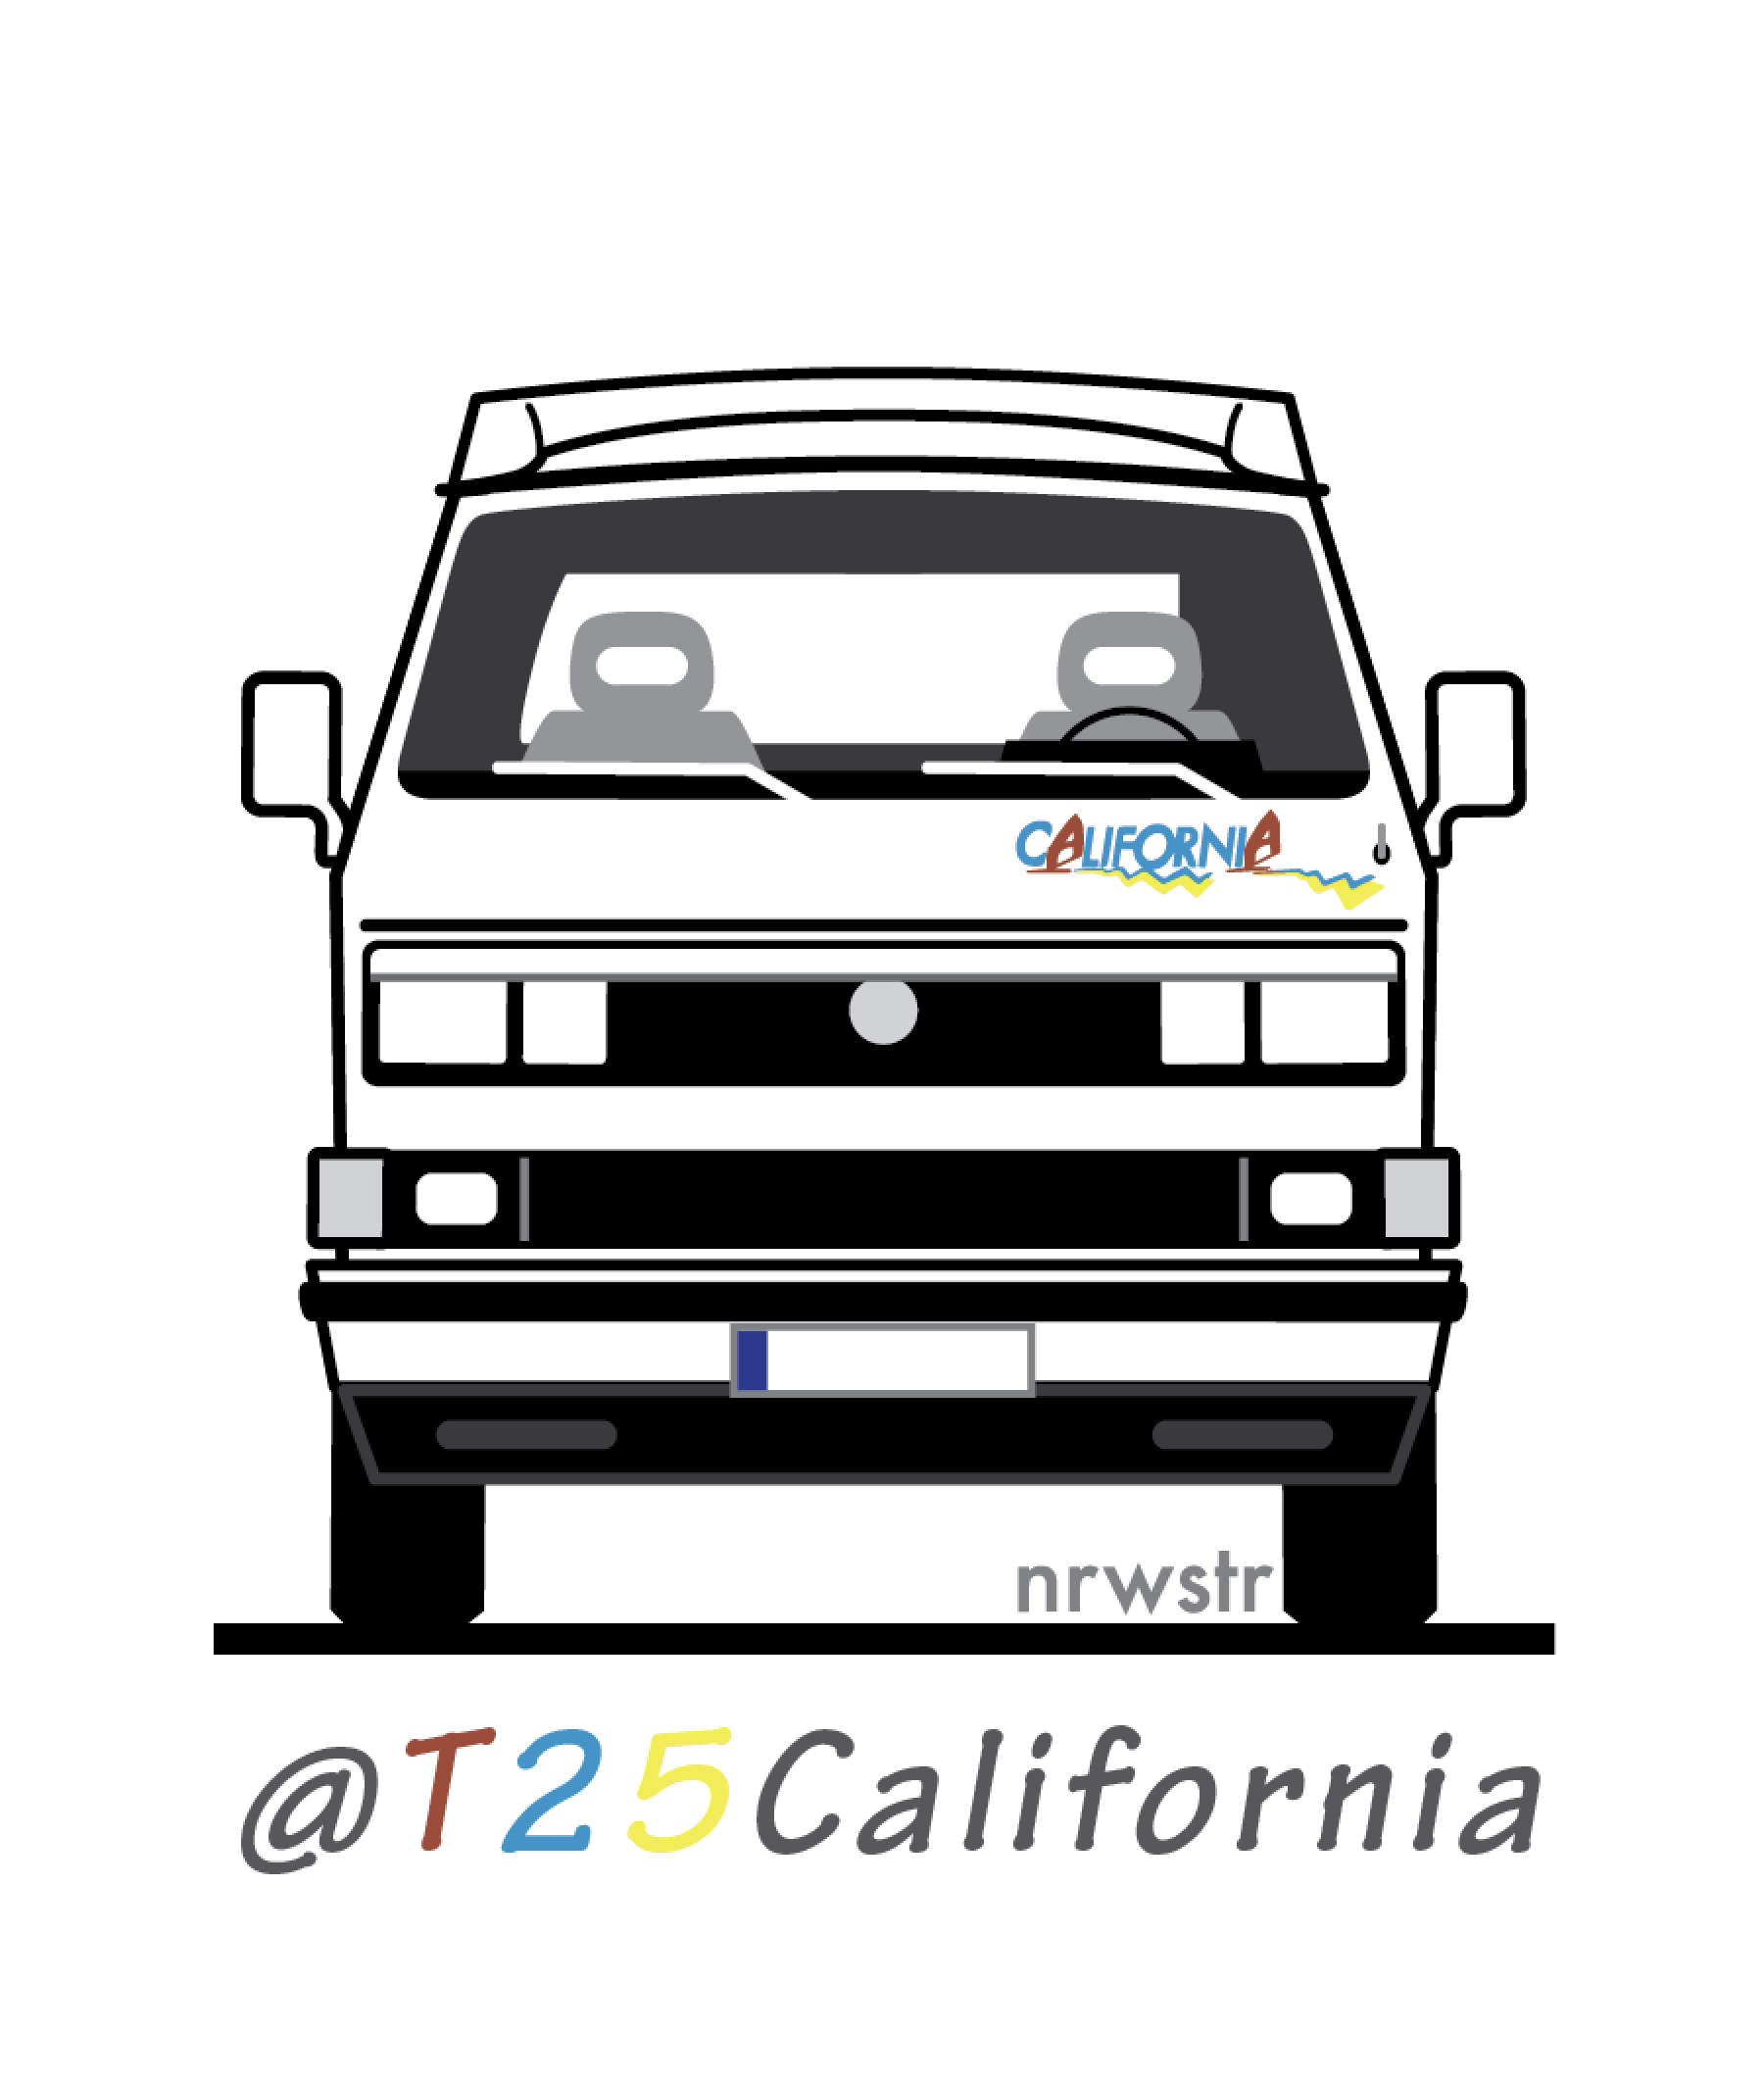 comm-t25california front view.png